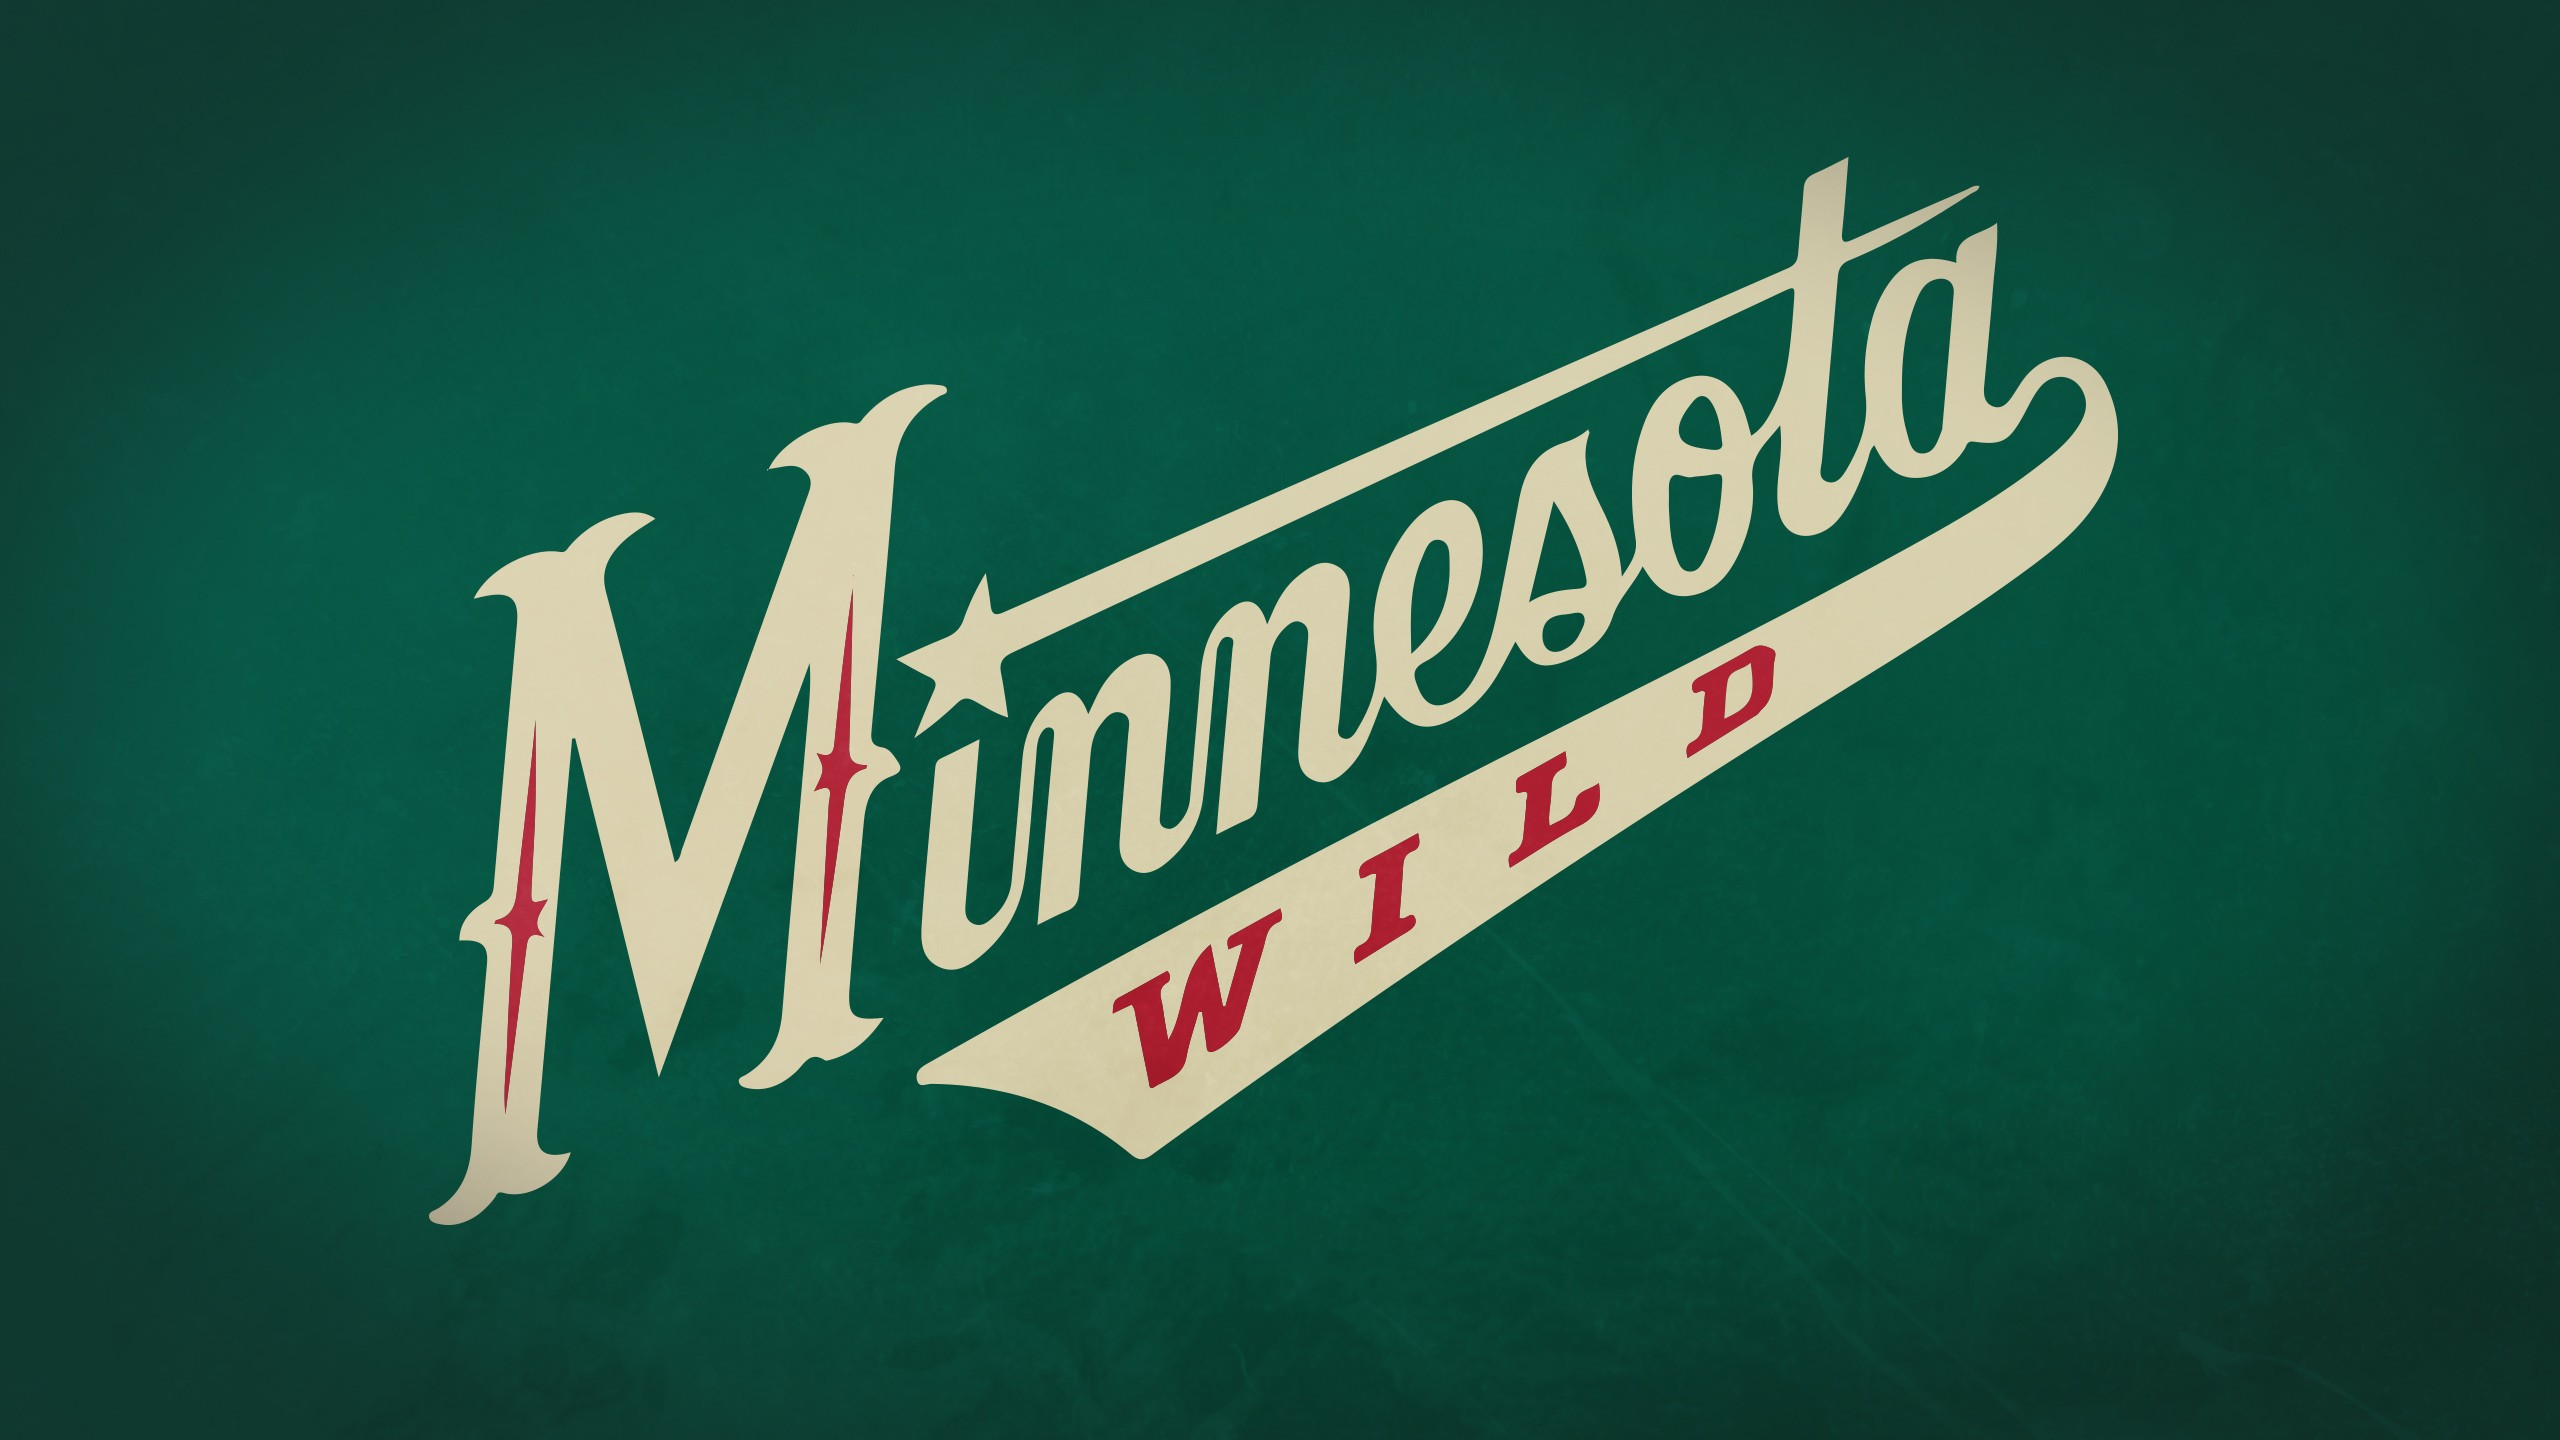 Minnesota wild hd wallpaper background image 2560x1440 id 415104 wallpaper abyss - Minnesota wild logo ...